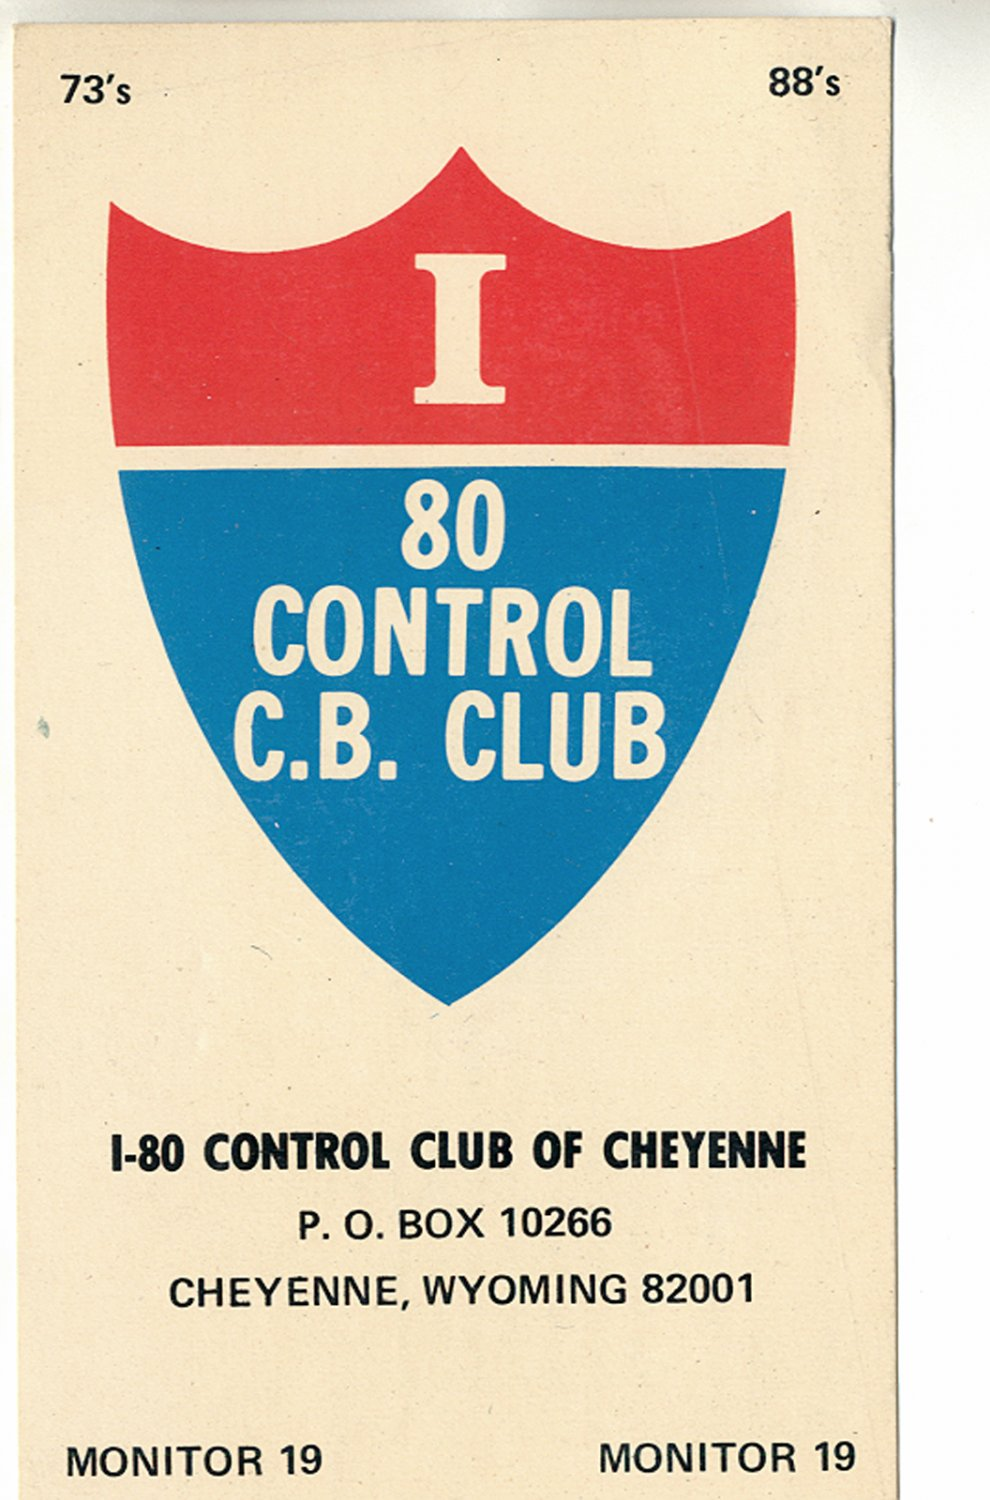 I-80 CONTROL CLUB OF CHEYENNE WYOMING COLOR POSTCARD #49 UNUSED NEAR MINT